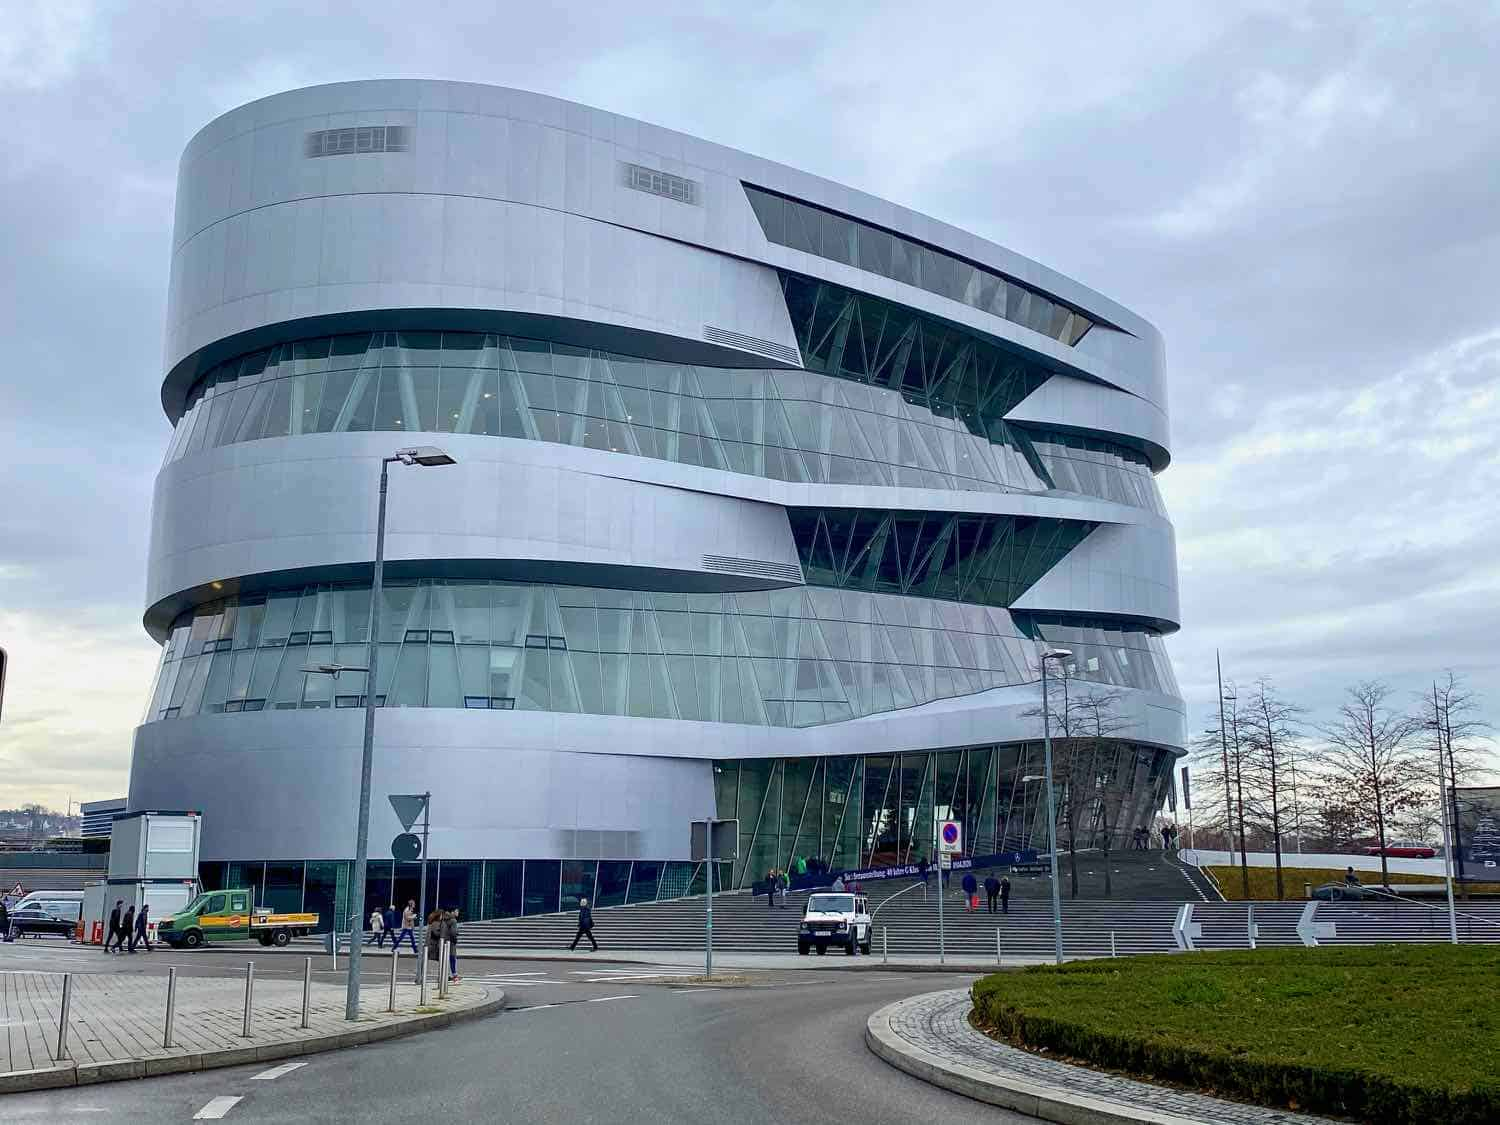 The Mercedes Museum has rounded edges that makes for a futuristic look